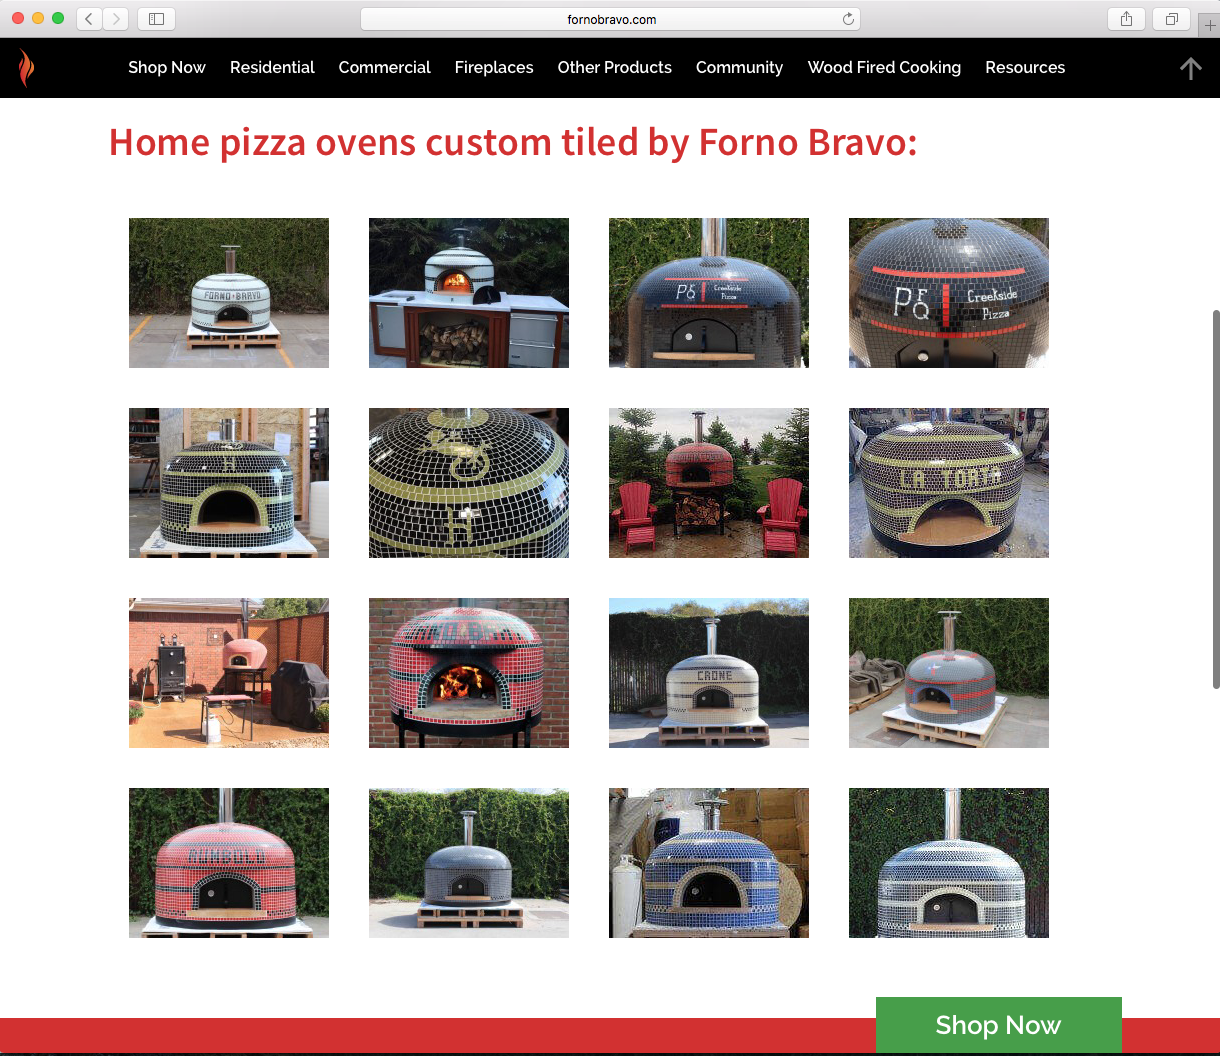 Custom Tiled Pizza Oven Forno Bravo Screen Shot